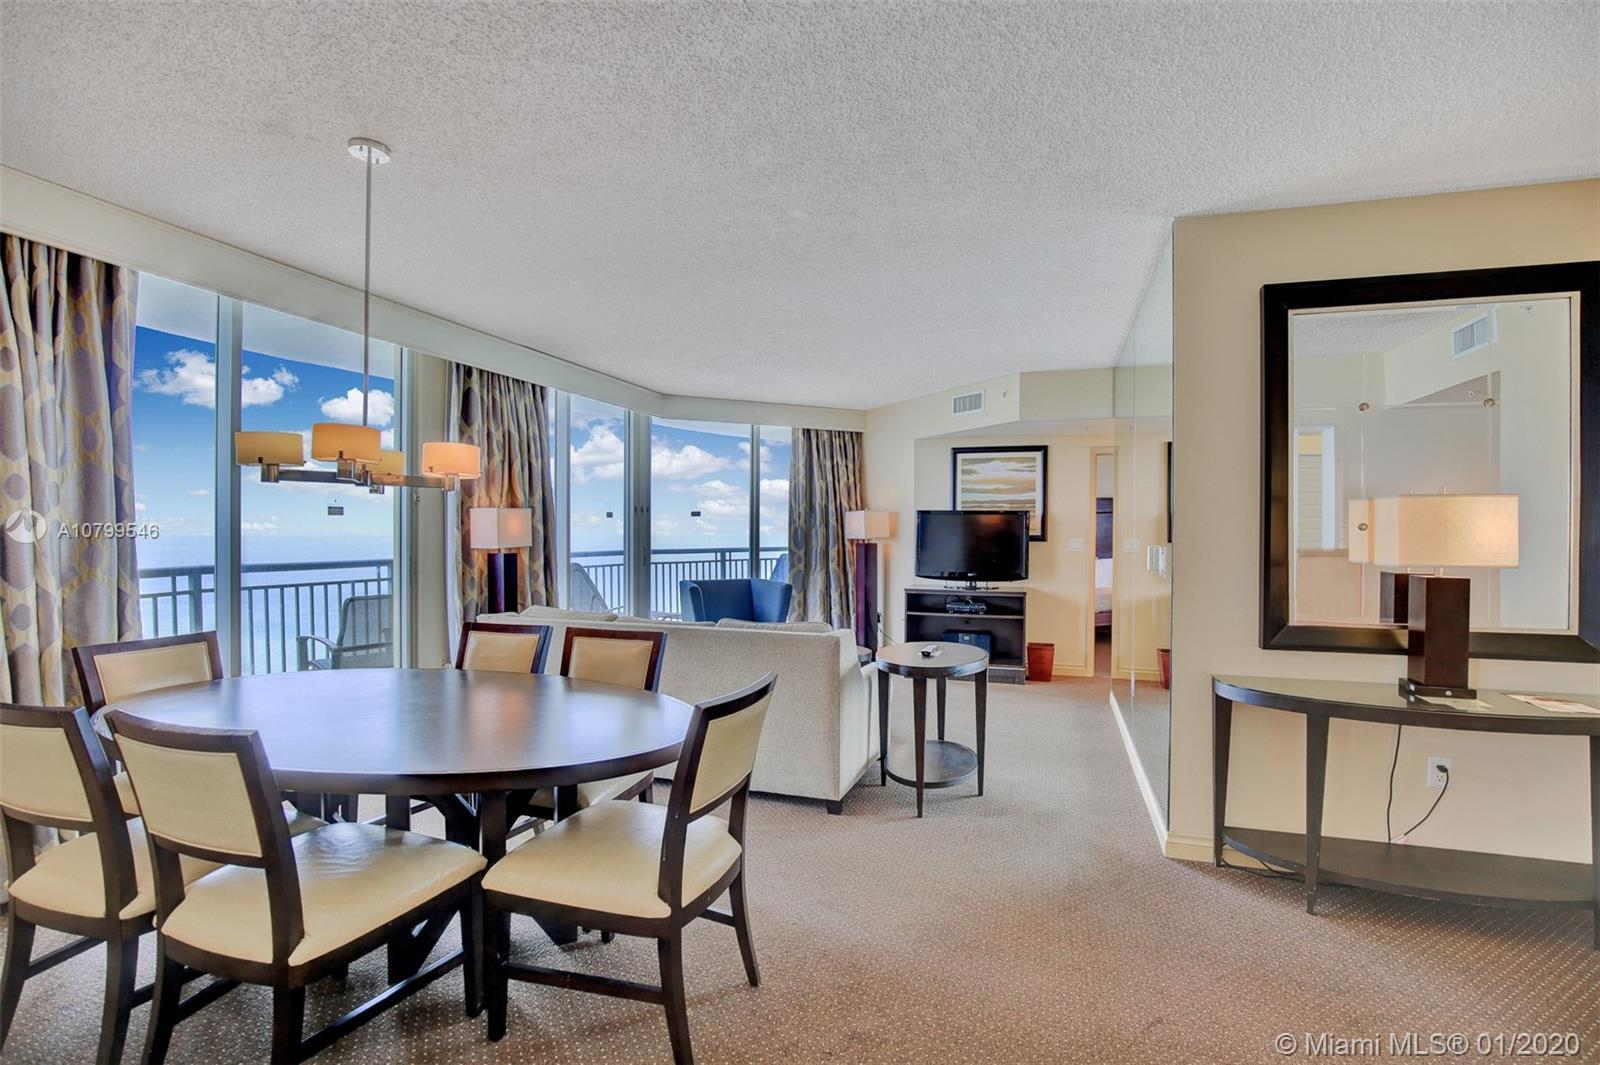 WOW! Breathtaking Direct Ocean Views from every room! This super spacious 3 bedroom 2 bathrooms at t